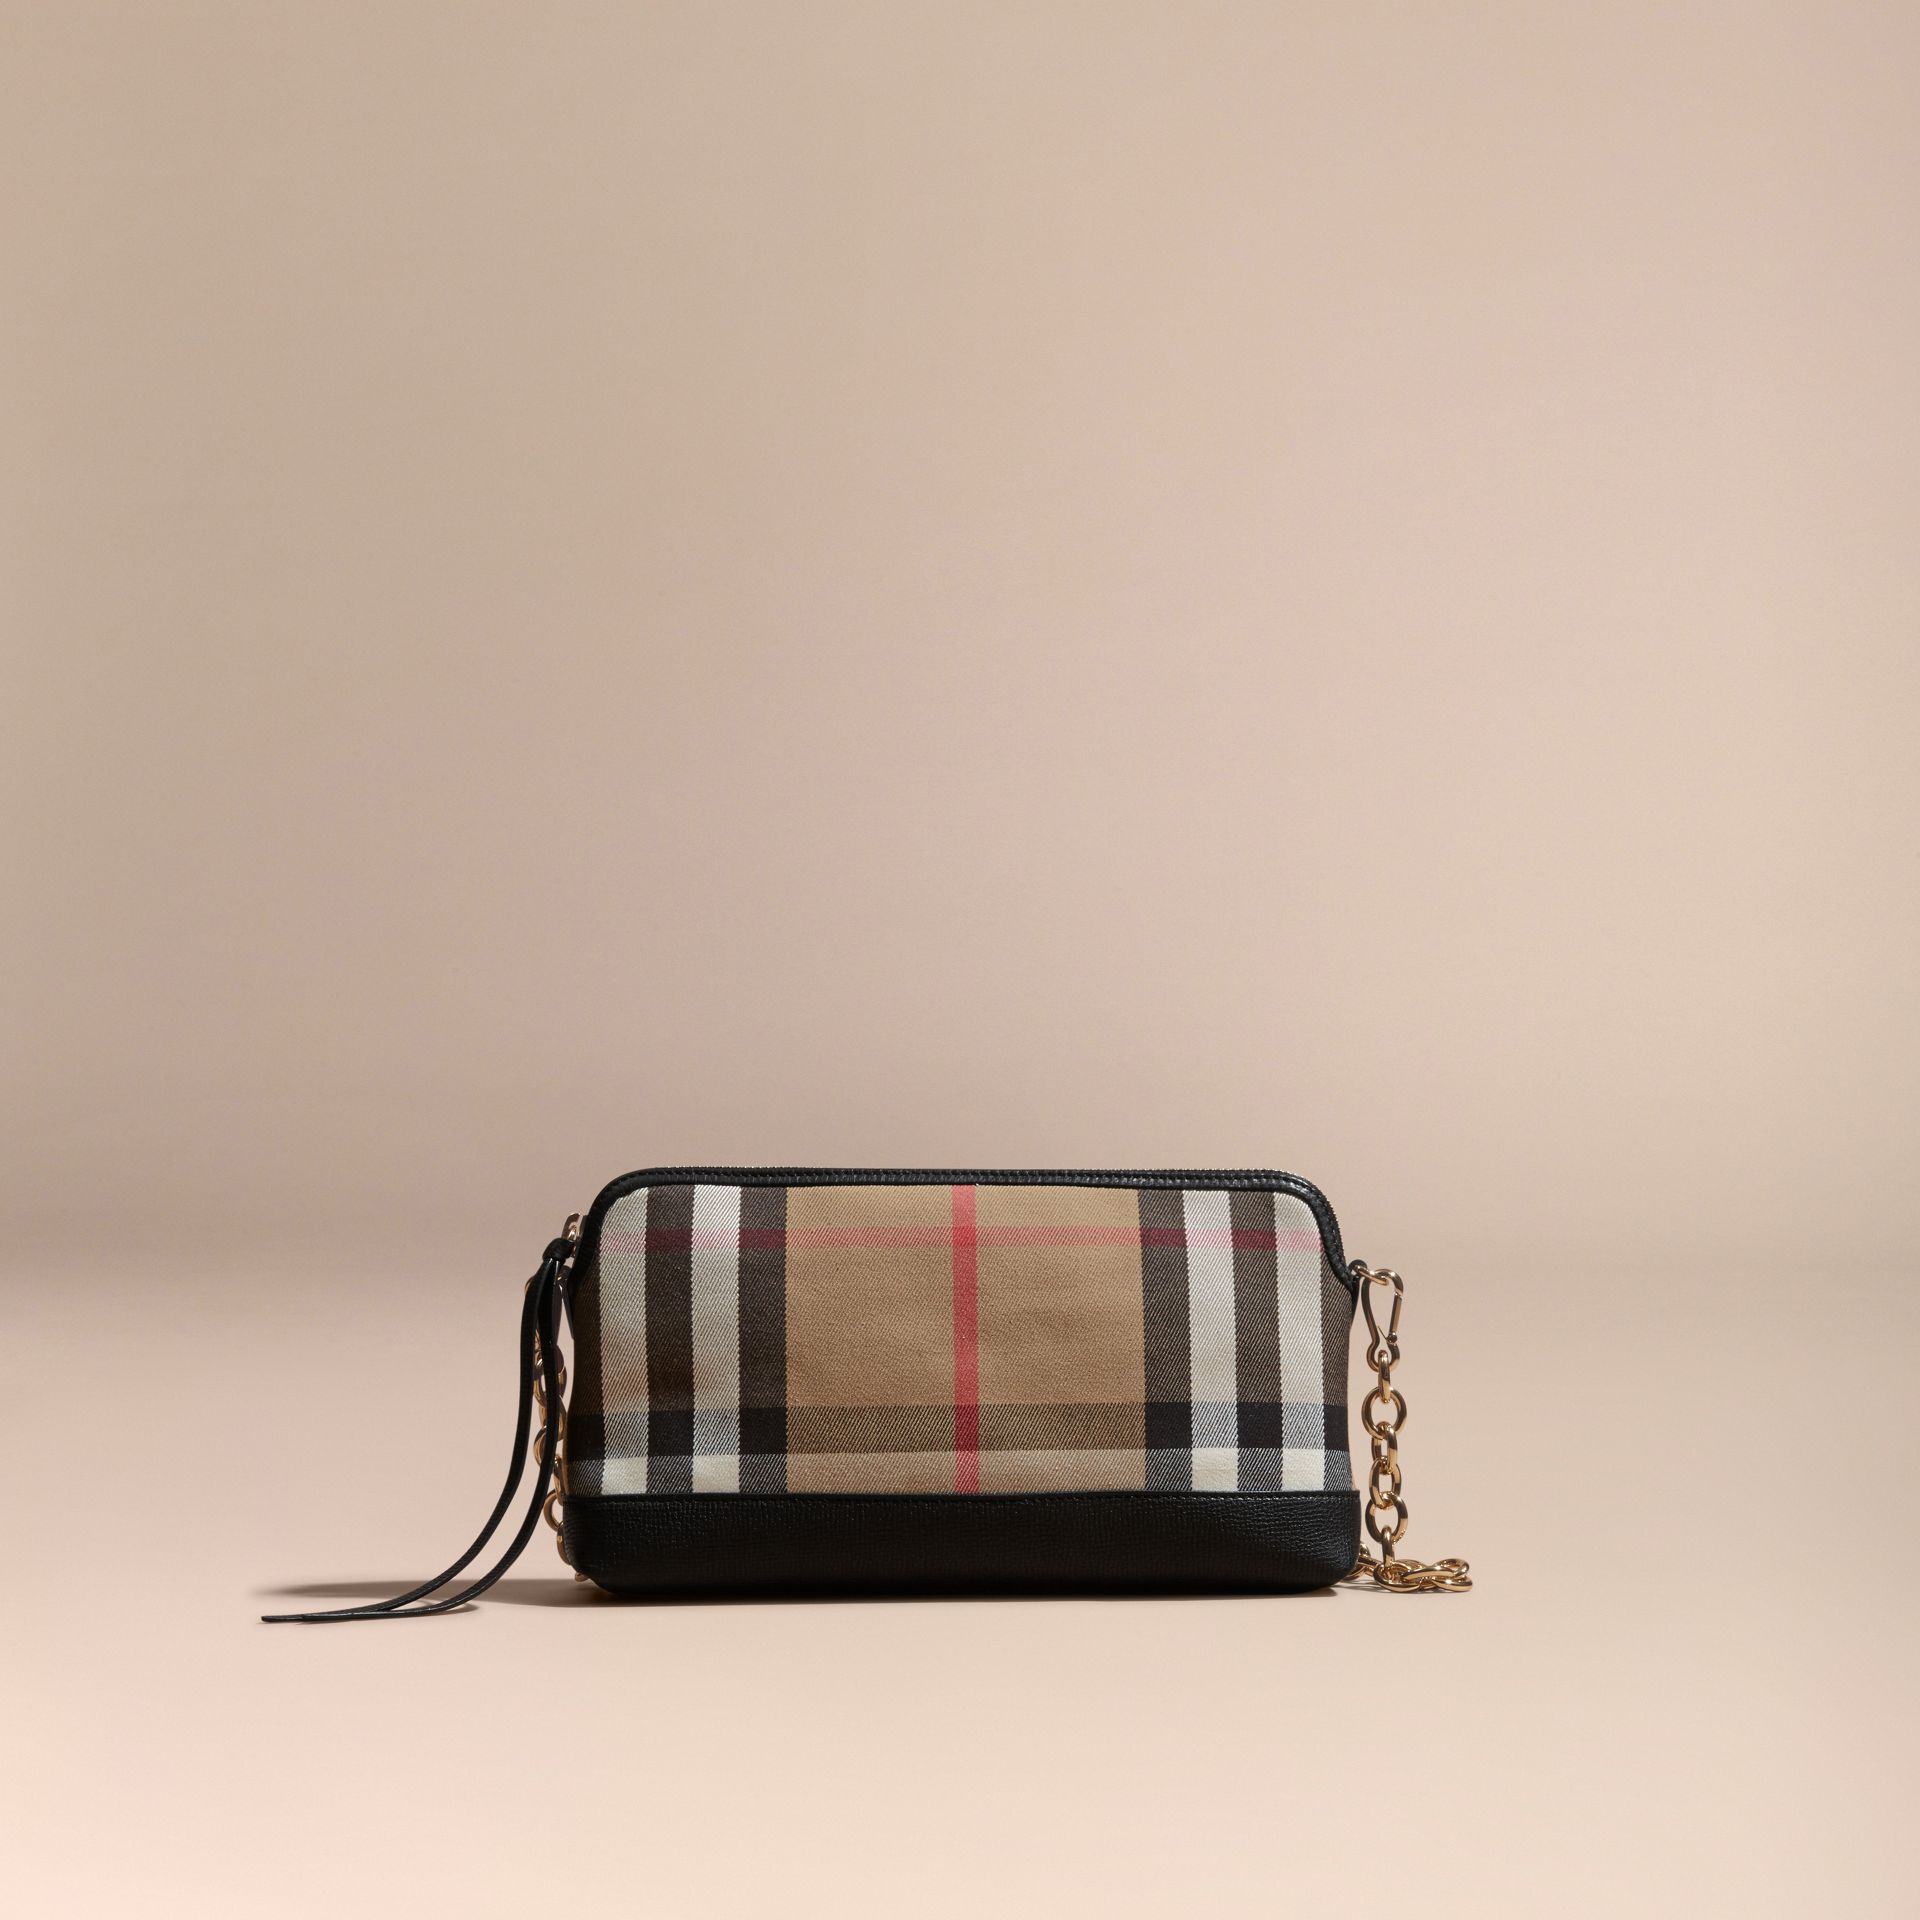 House Check and Leather Clutch Bag in Black - gallery image 9